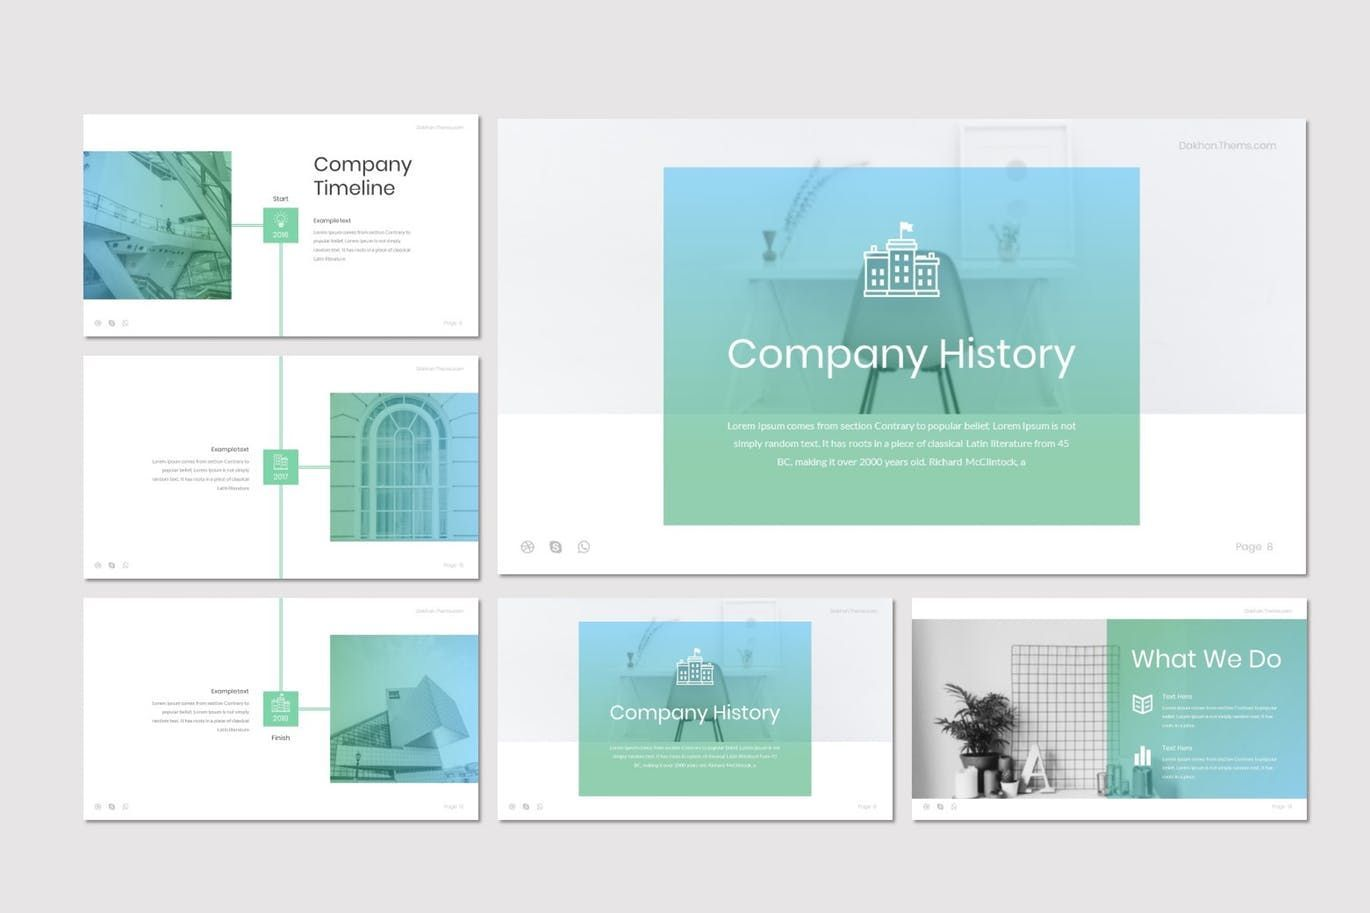 Dakhon - PowerPoint Template, Slide 3, 07227, Presentation Templates — PoweredTemplate.com